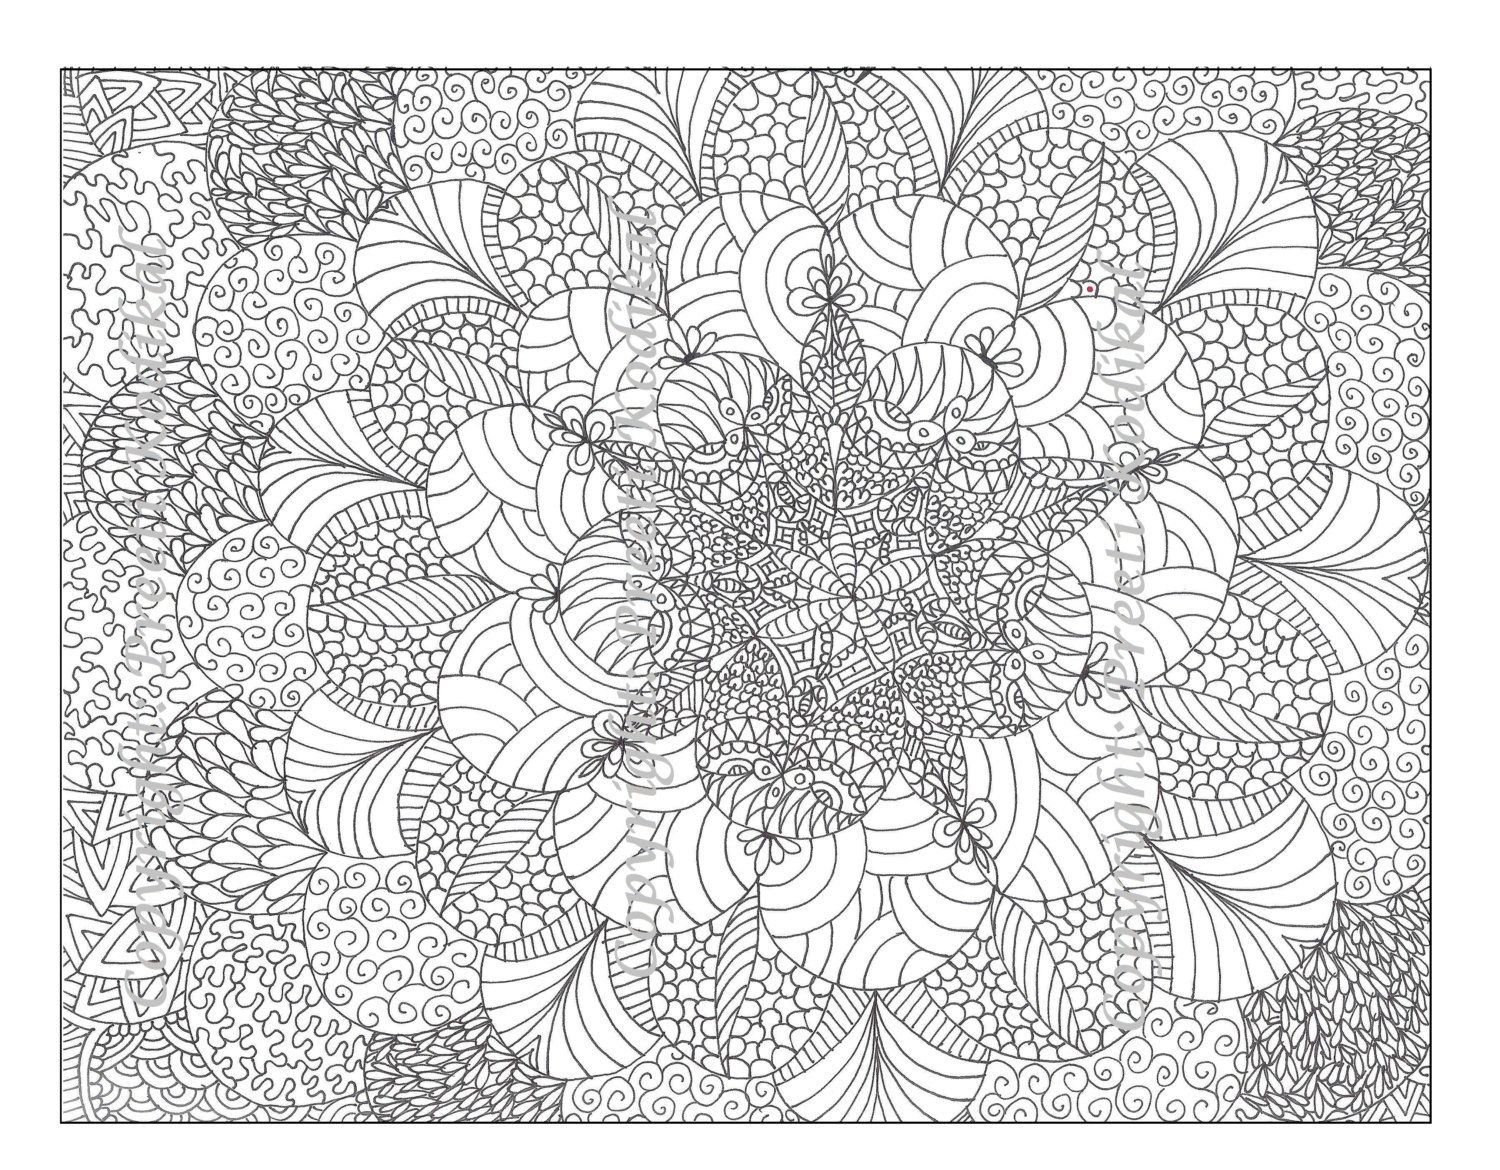 Printable Hard Coloring Pages For S - High Quality Coloring Pages